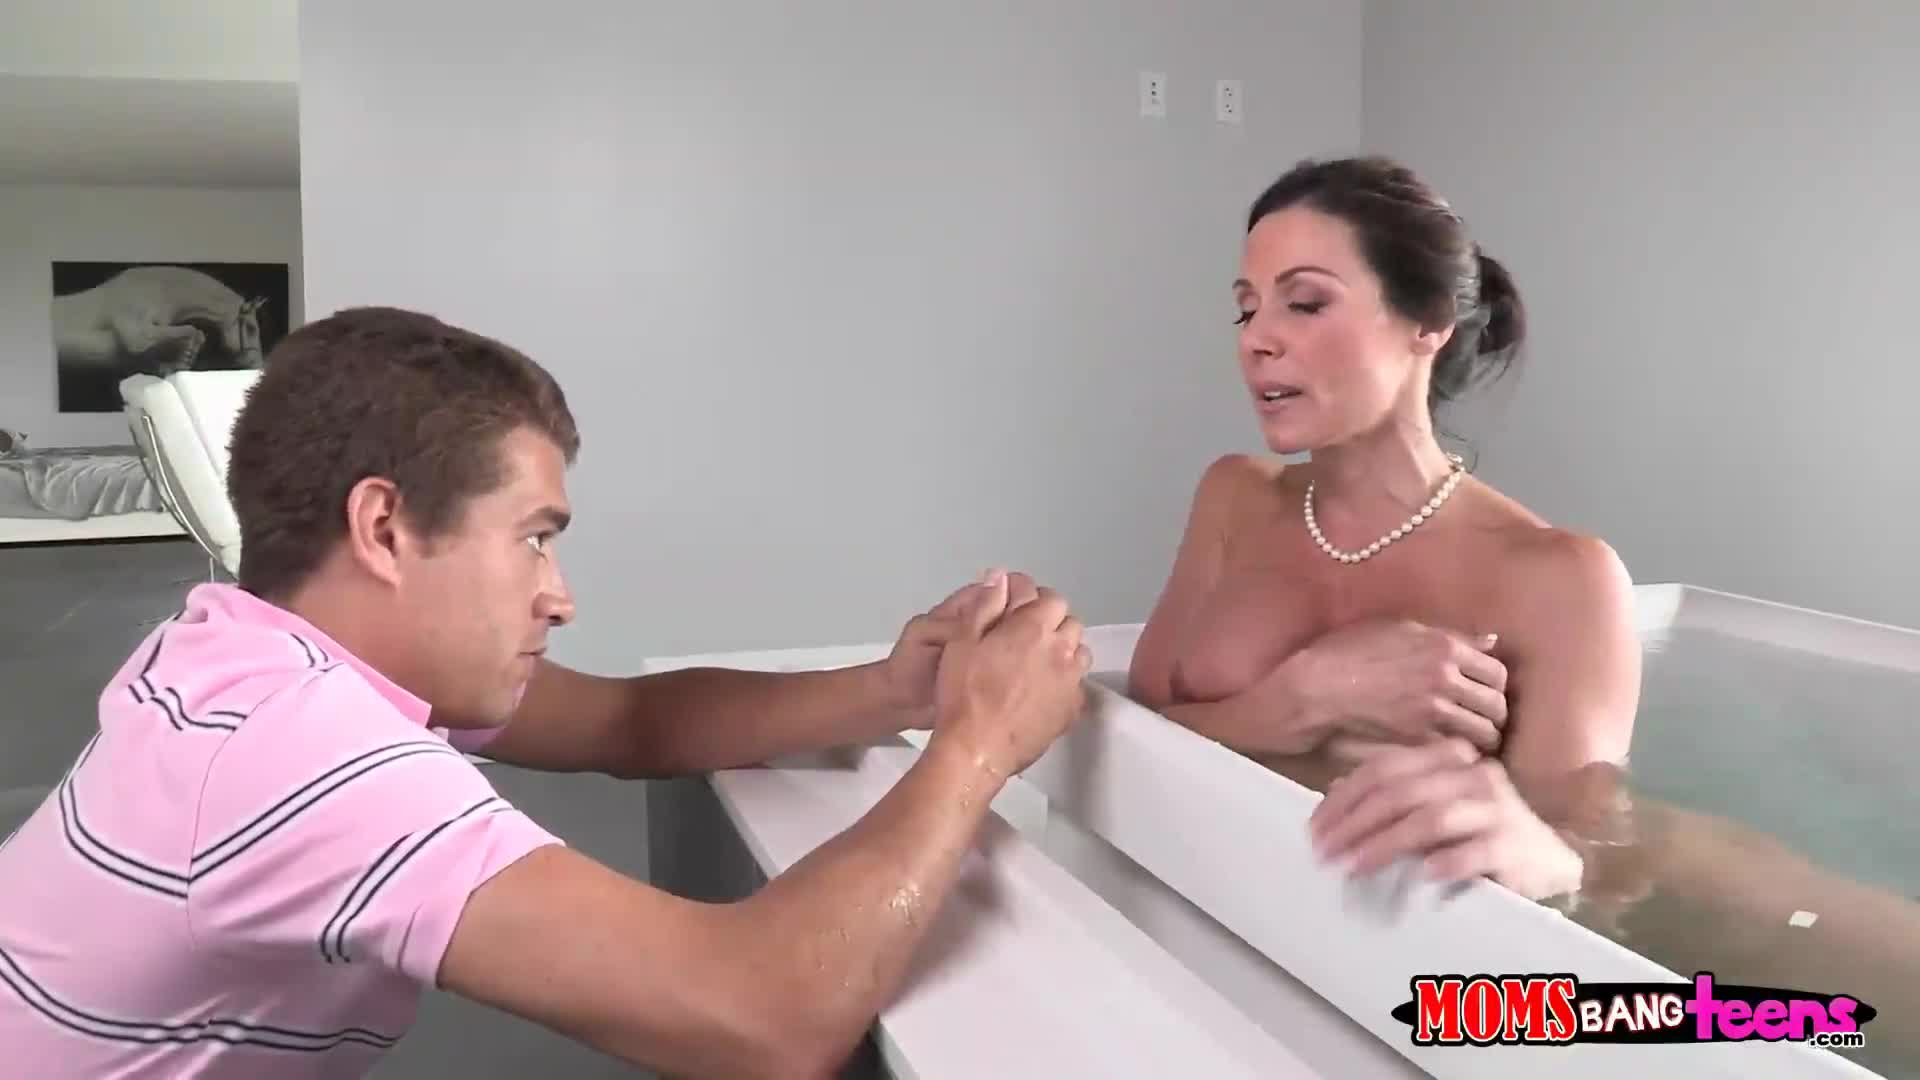 Very sexy stepmom blow son